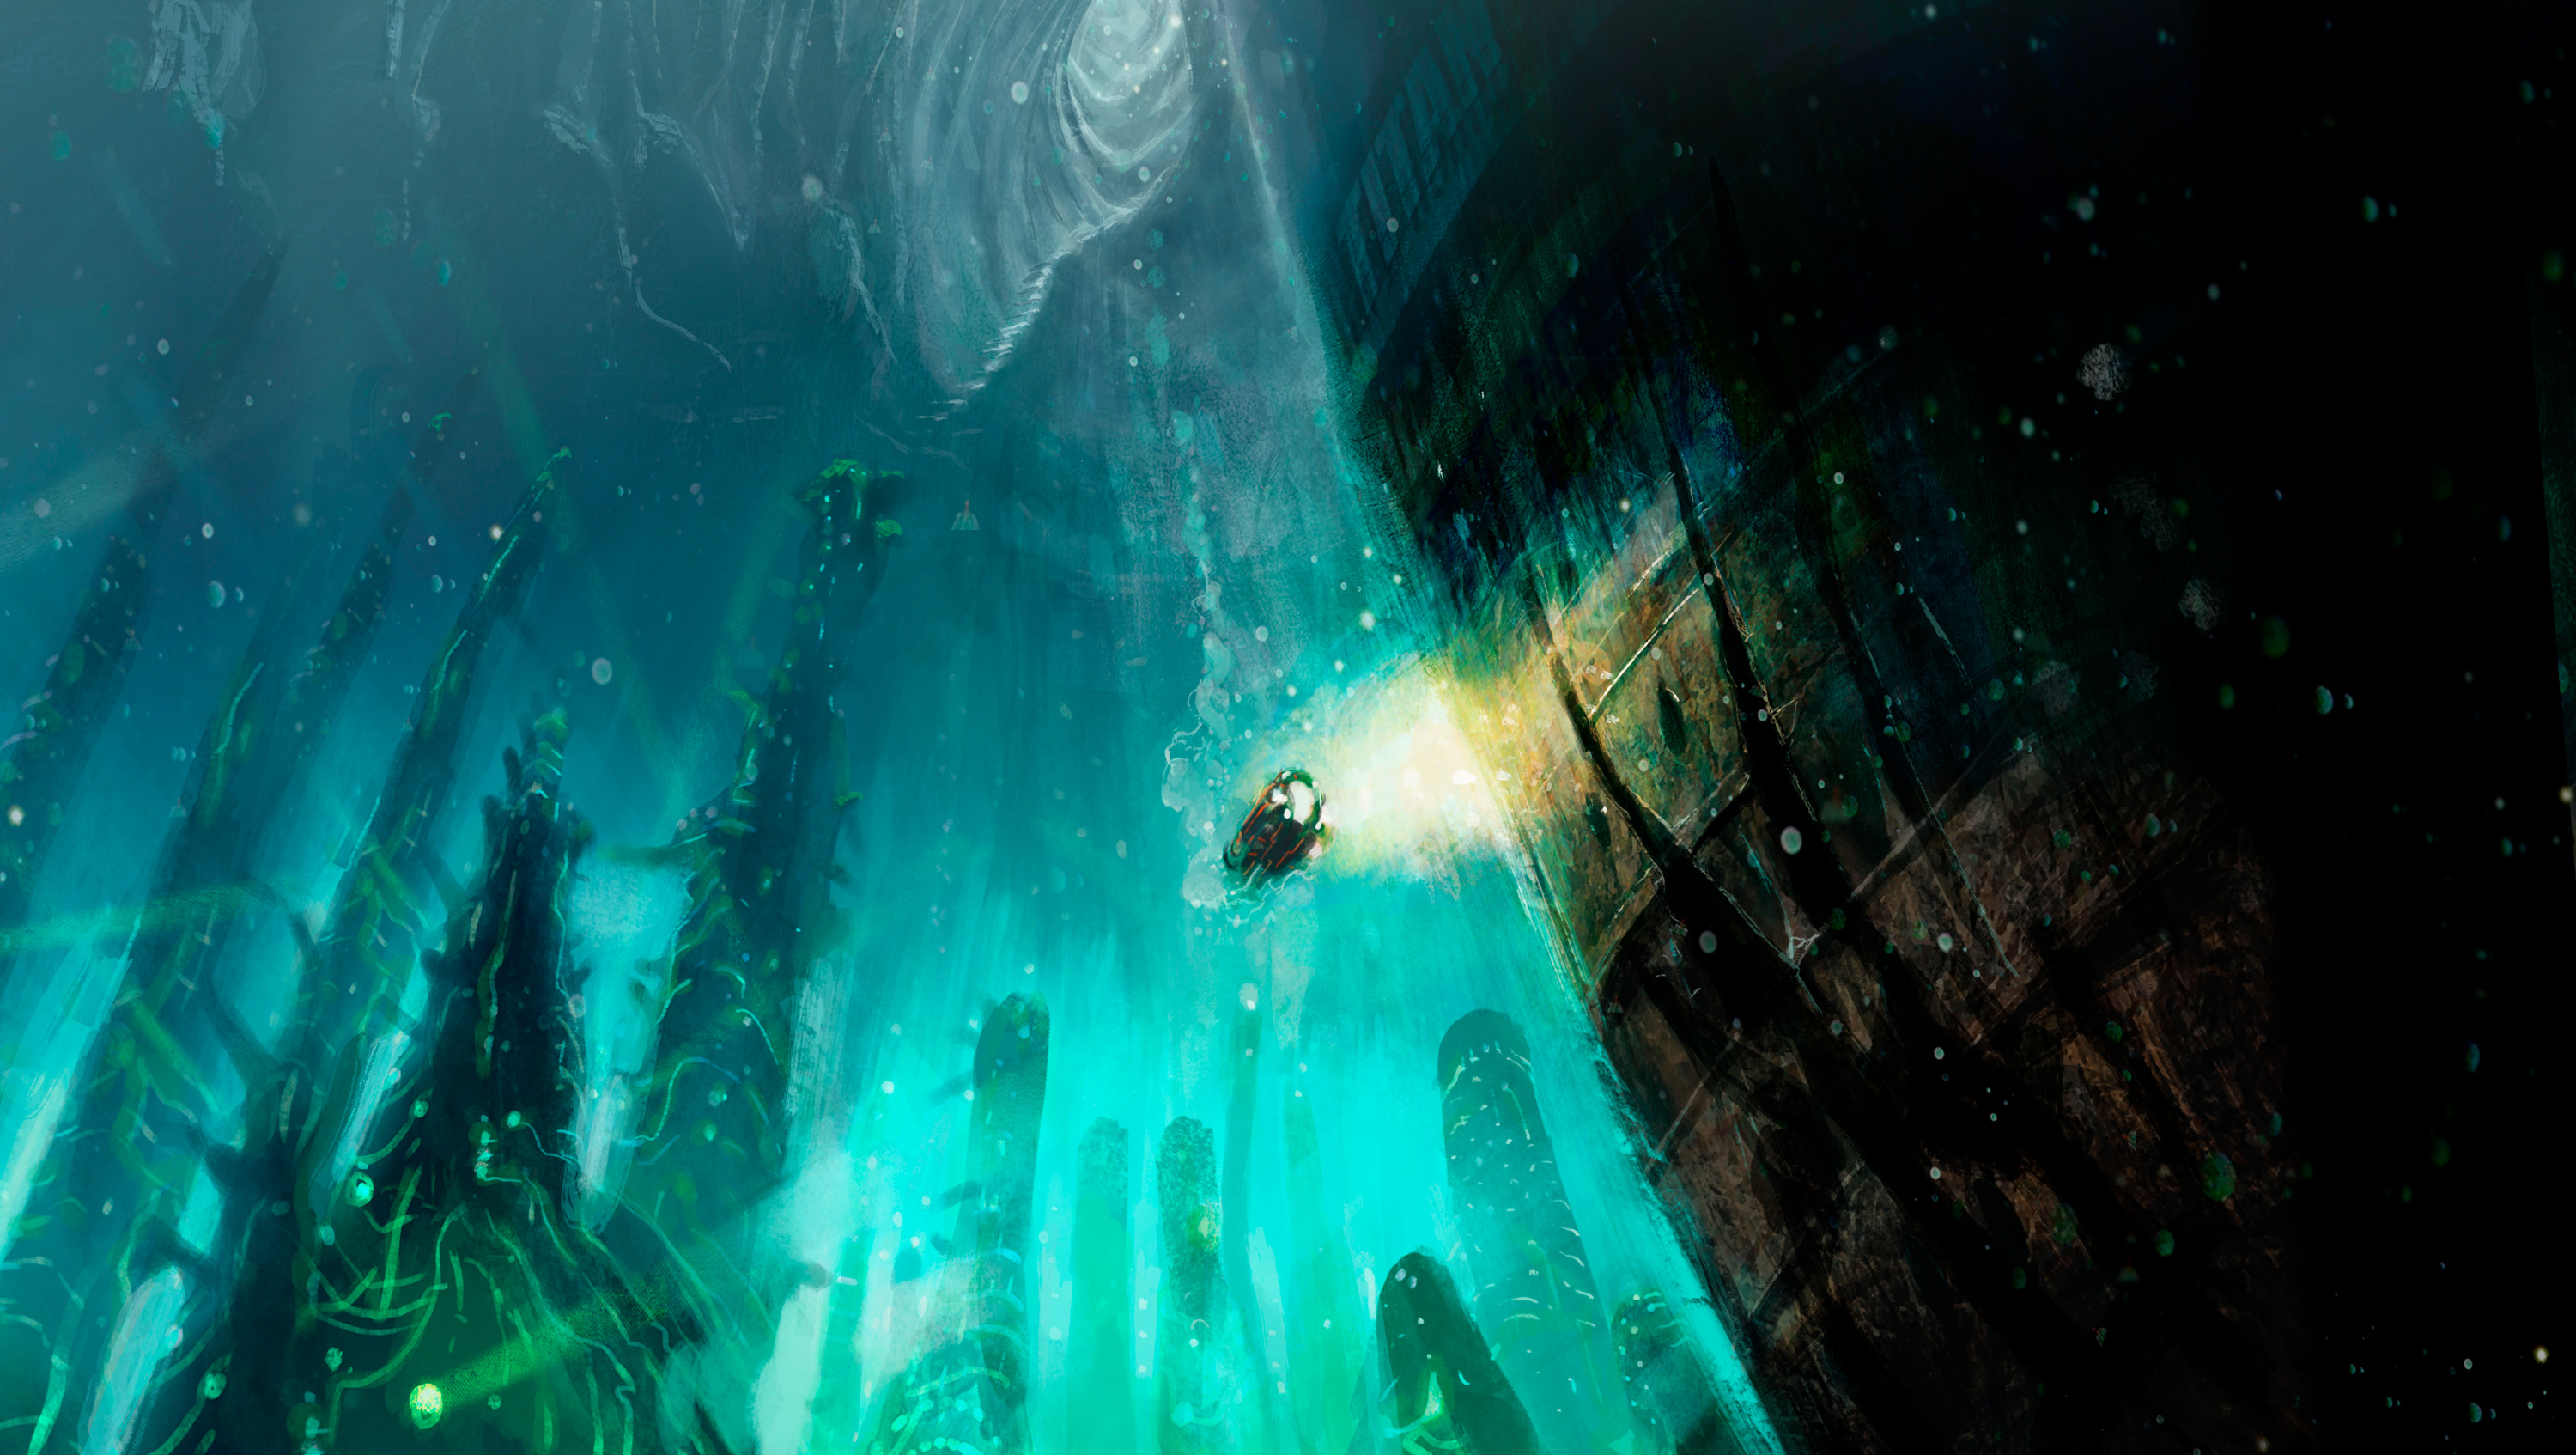 Kfr 03: The lost city submerged.